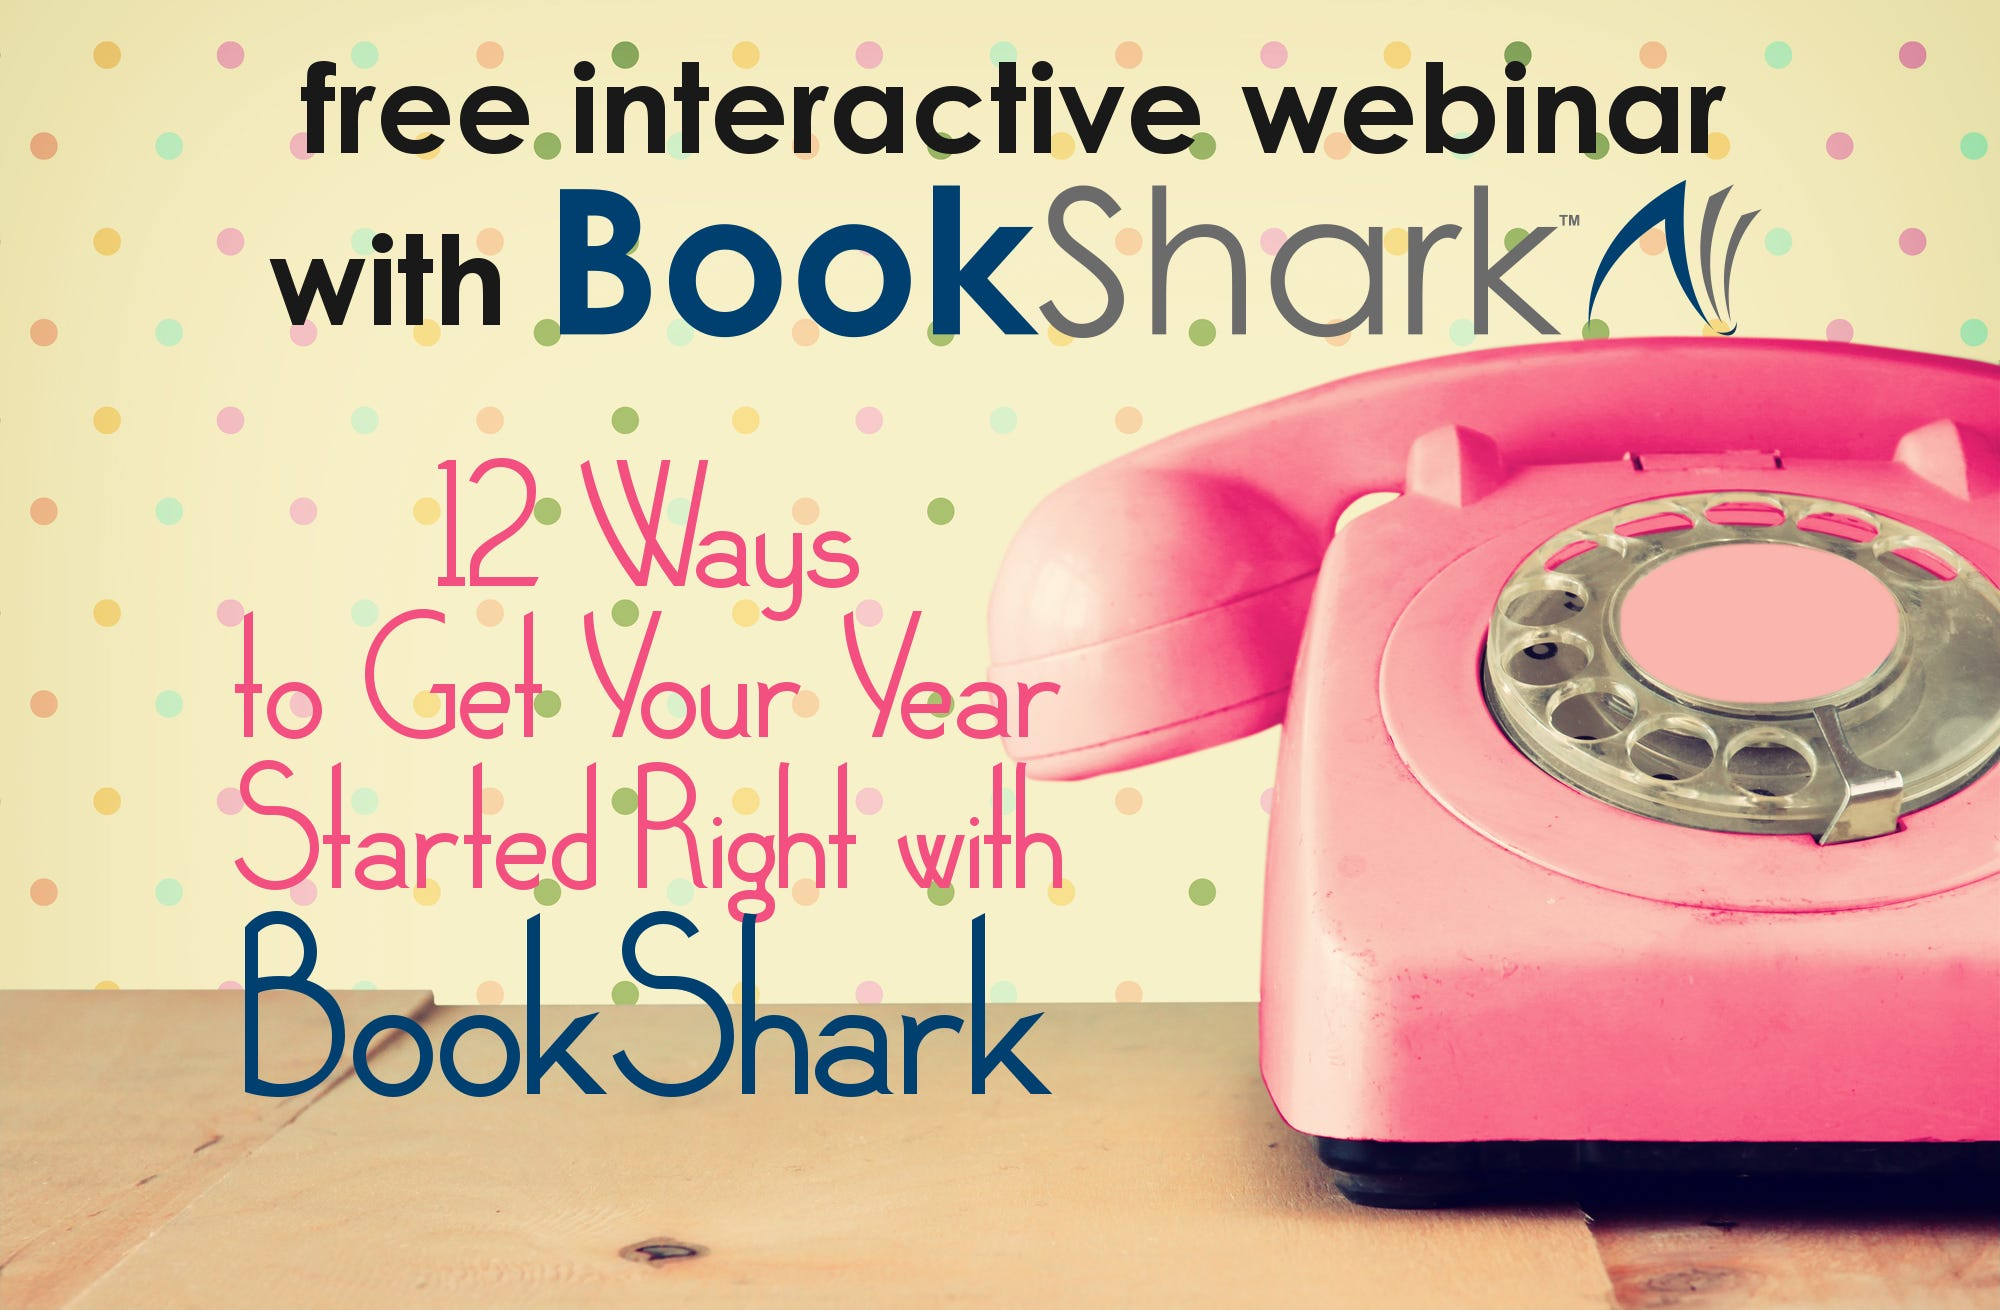 12 Ways to Get Your Year Started Right with BookShark free, interactive, online workshop